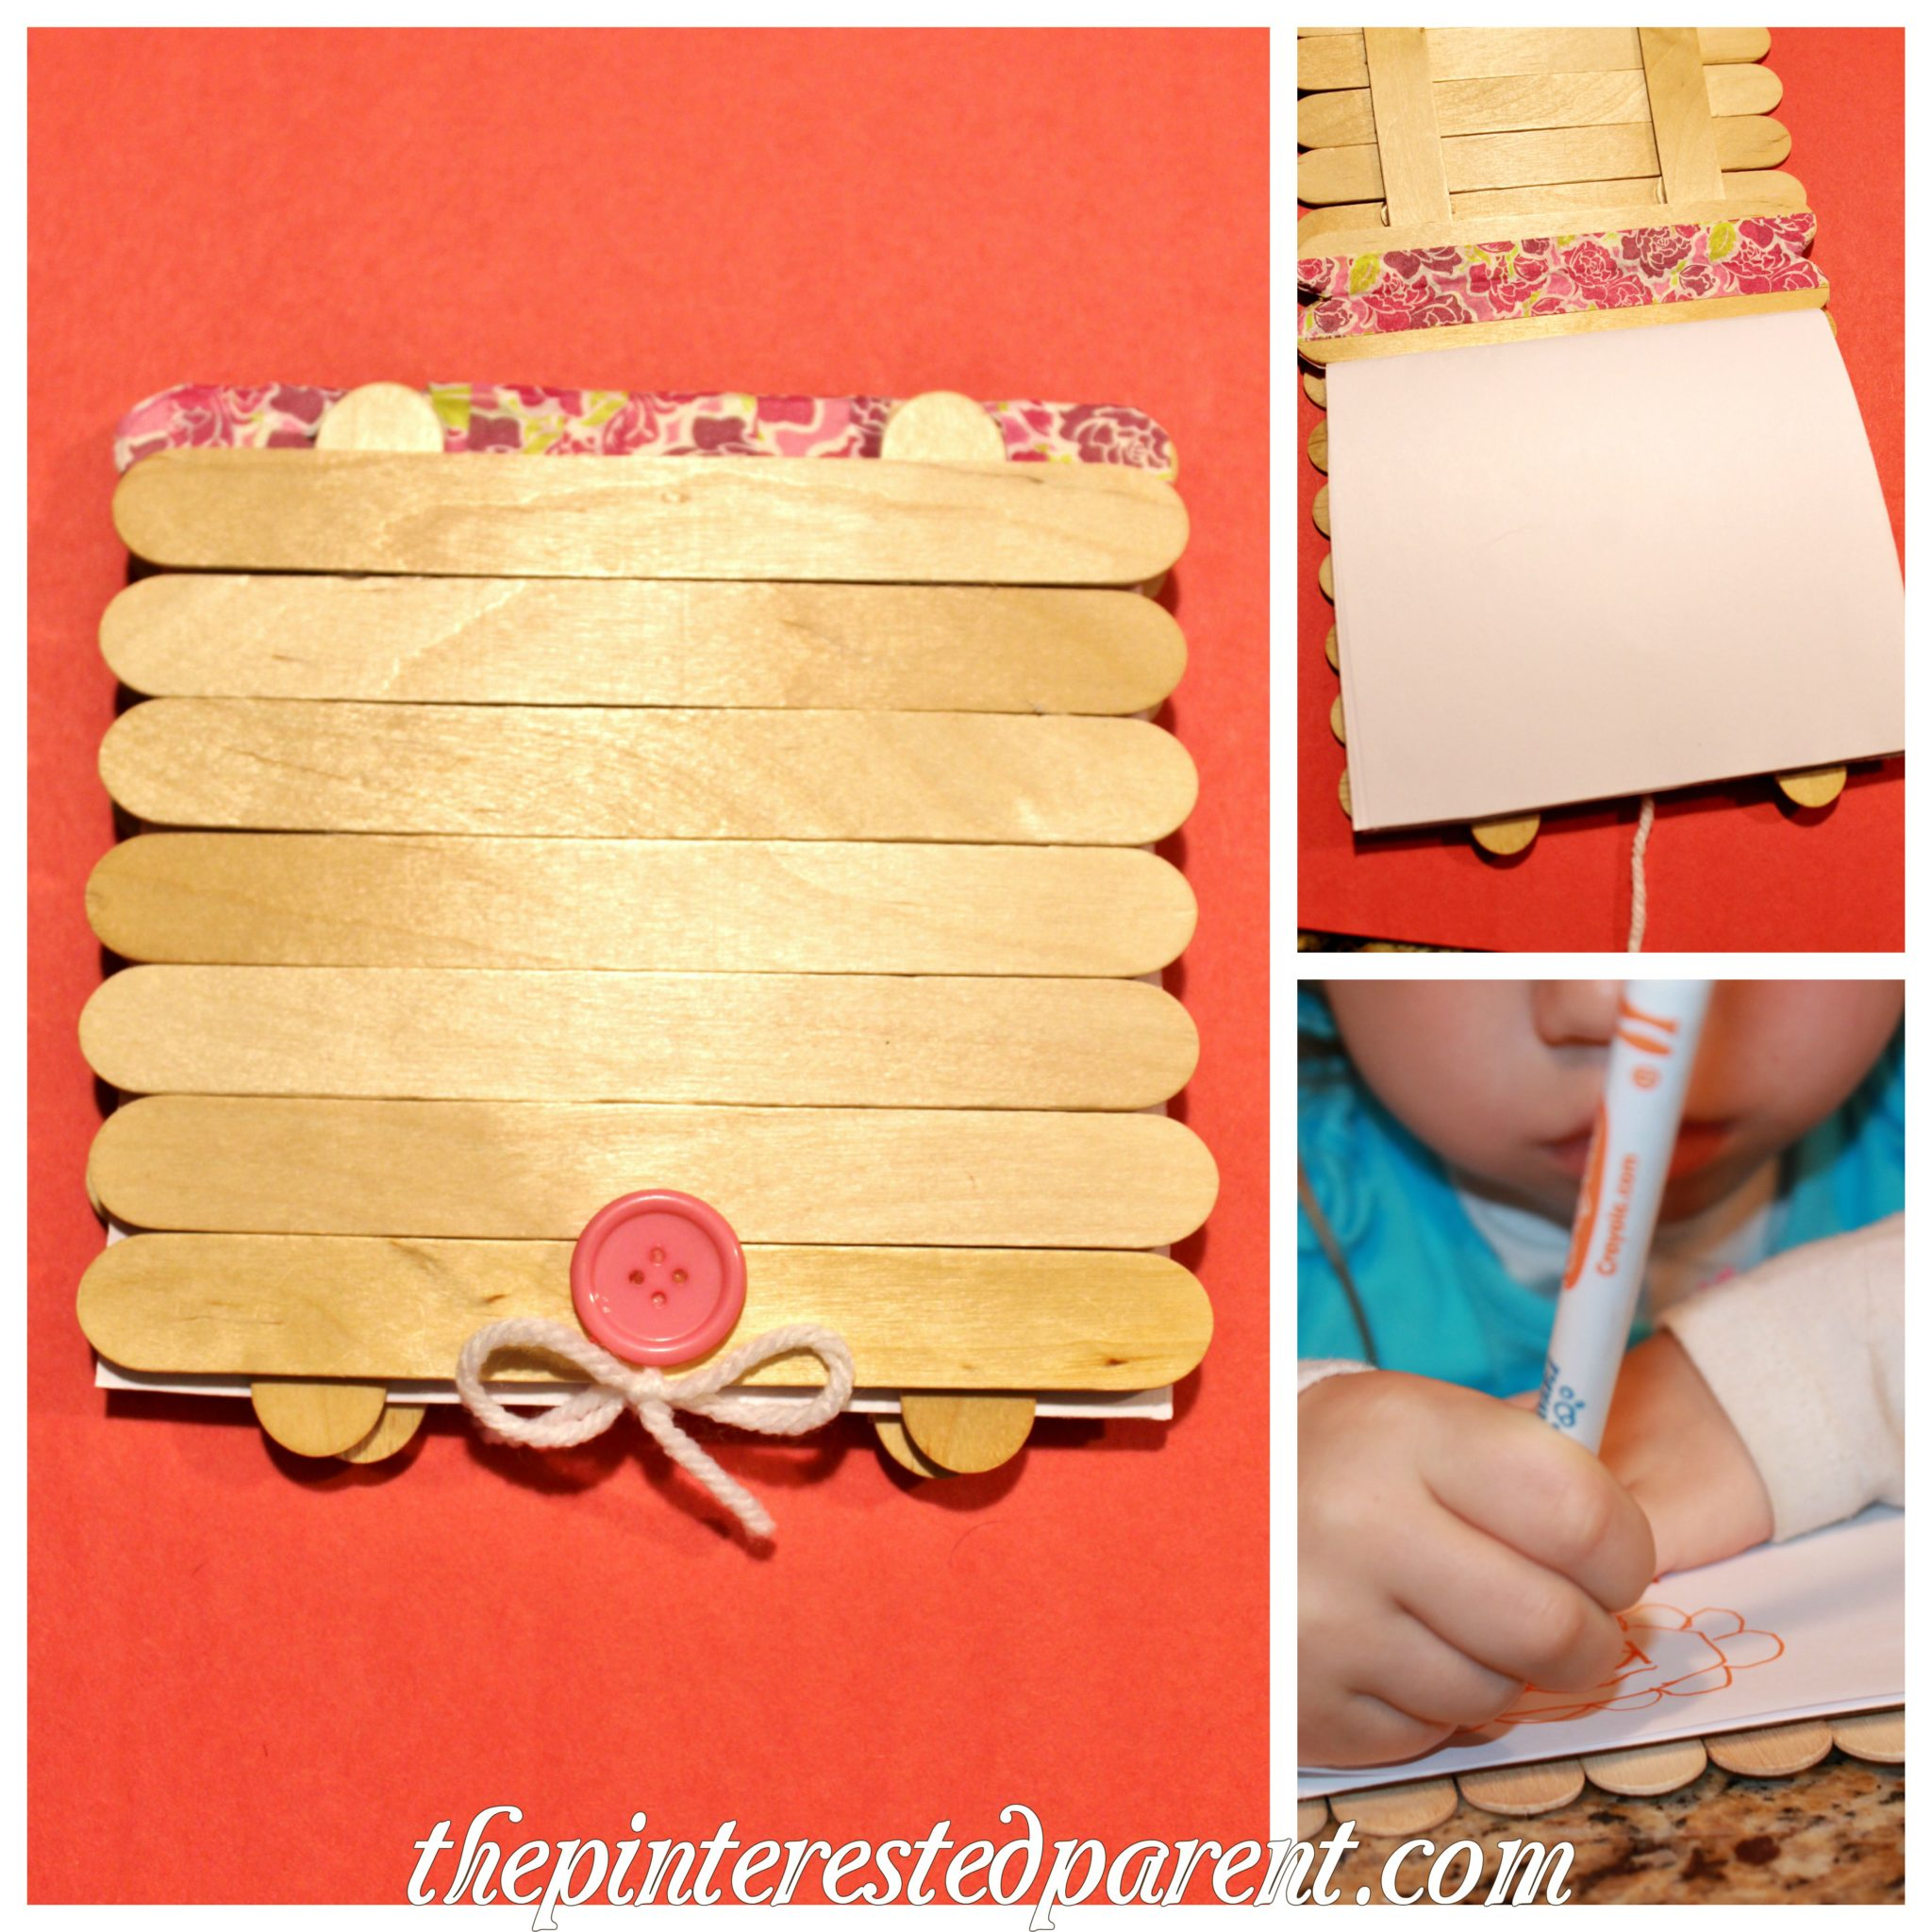 Popsicle stick art journal the pinterested parent for Popsicle sticks arts and crafts ideas